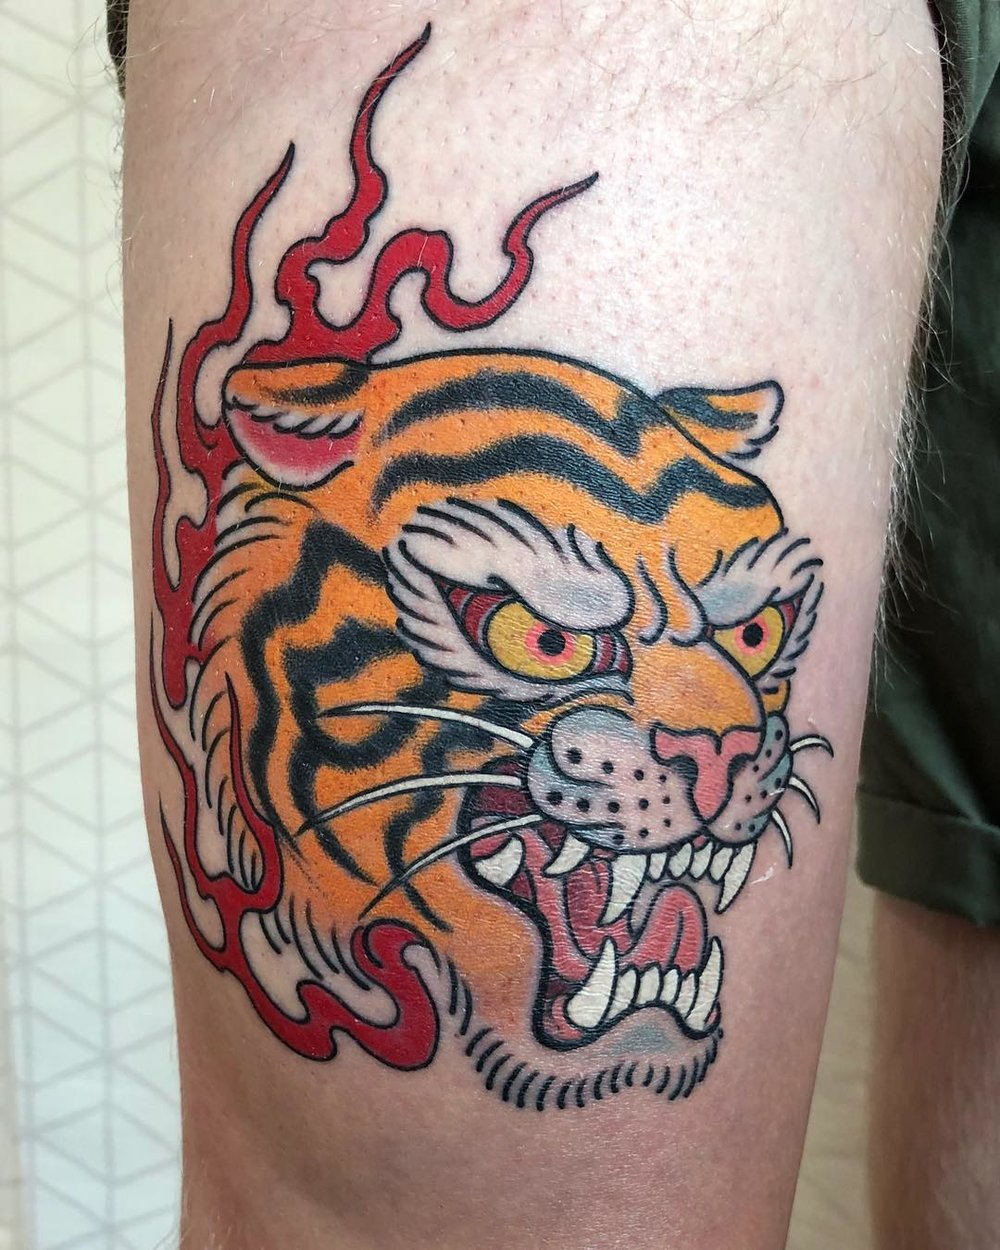 cody-phillpott-tiger-tattoo-traditionaltattoo-japanesetattoo.jpg